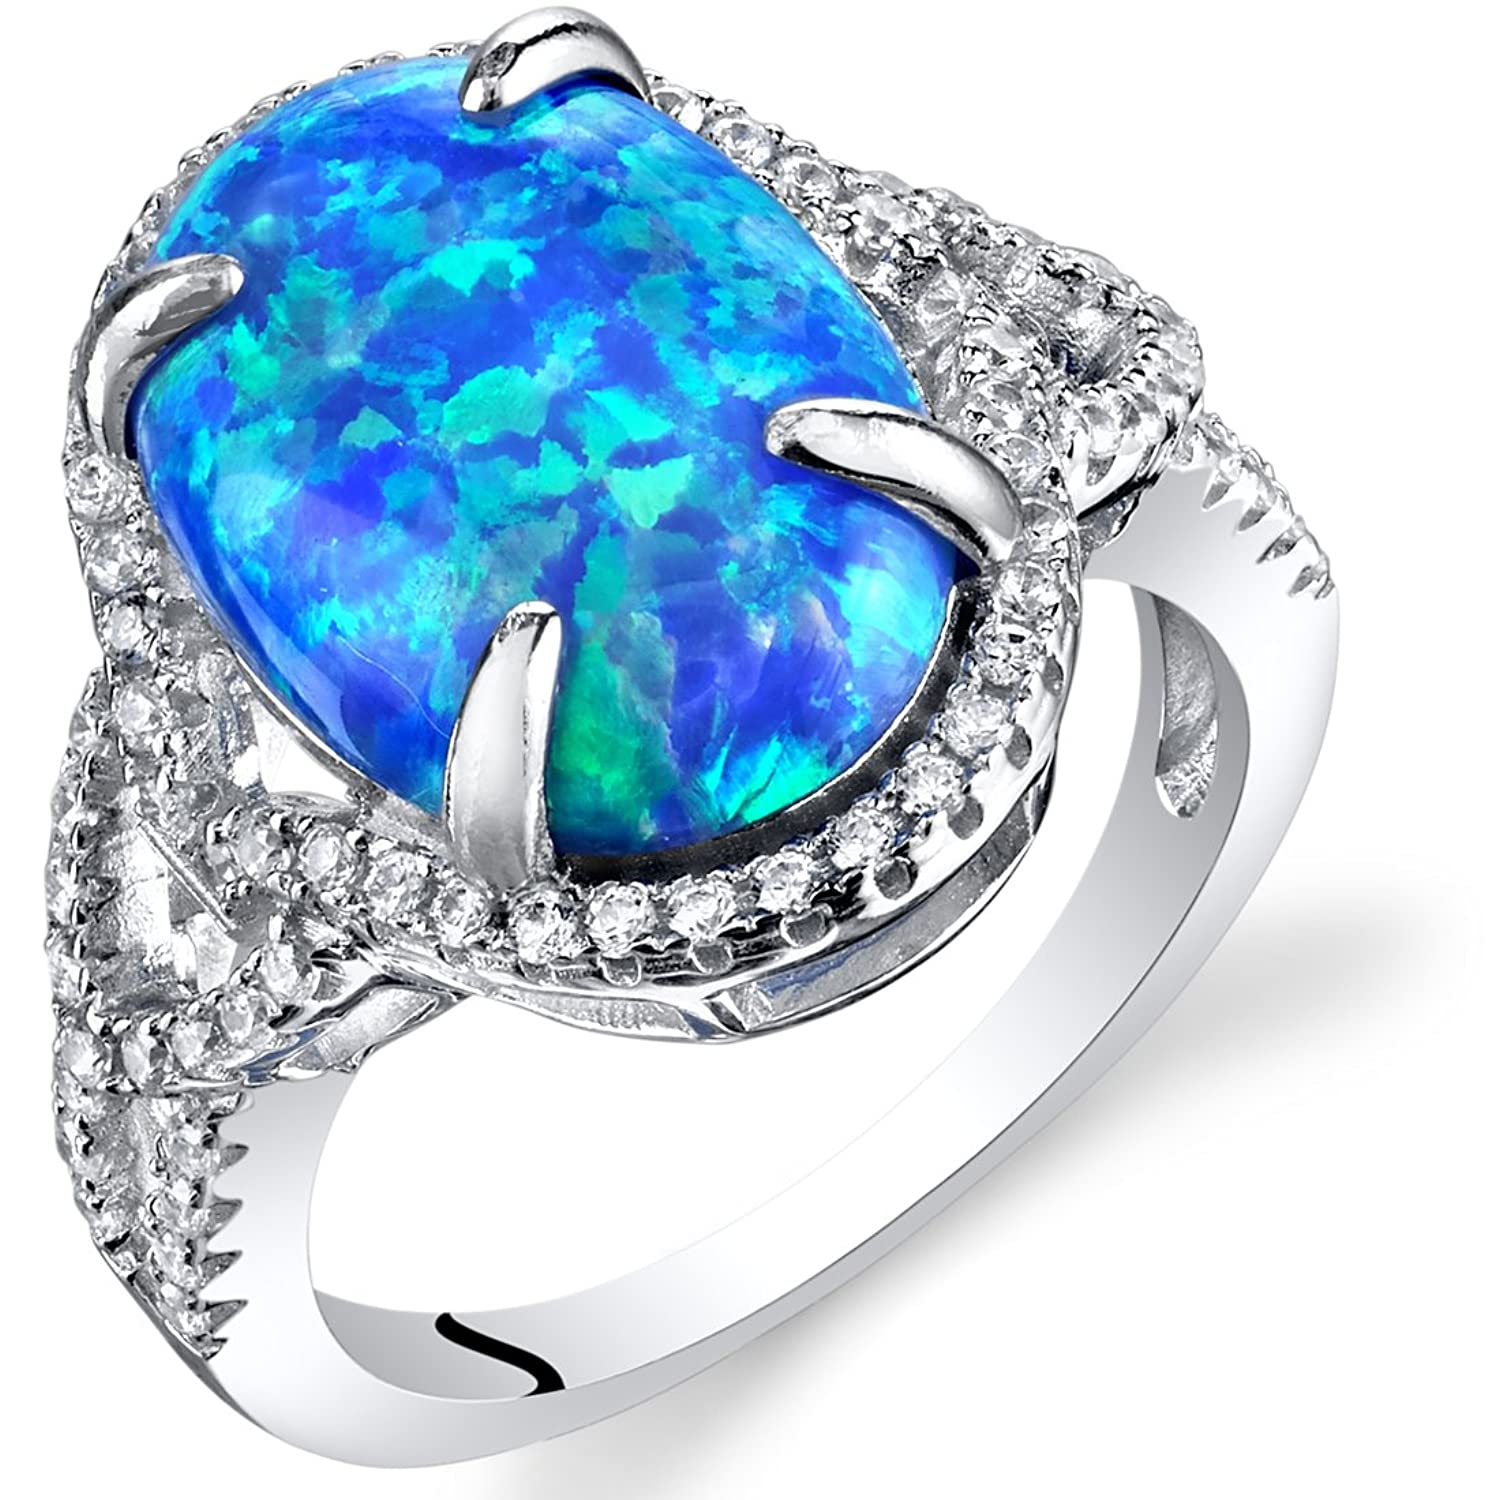 Created Blue Opal Halo Ring Sterling Silver 2.25 Carats Sizes 5 to 9